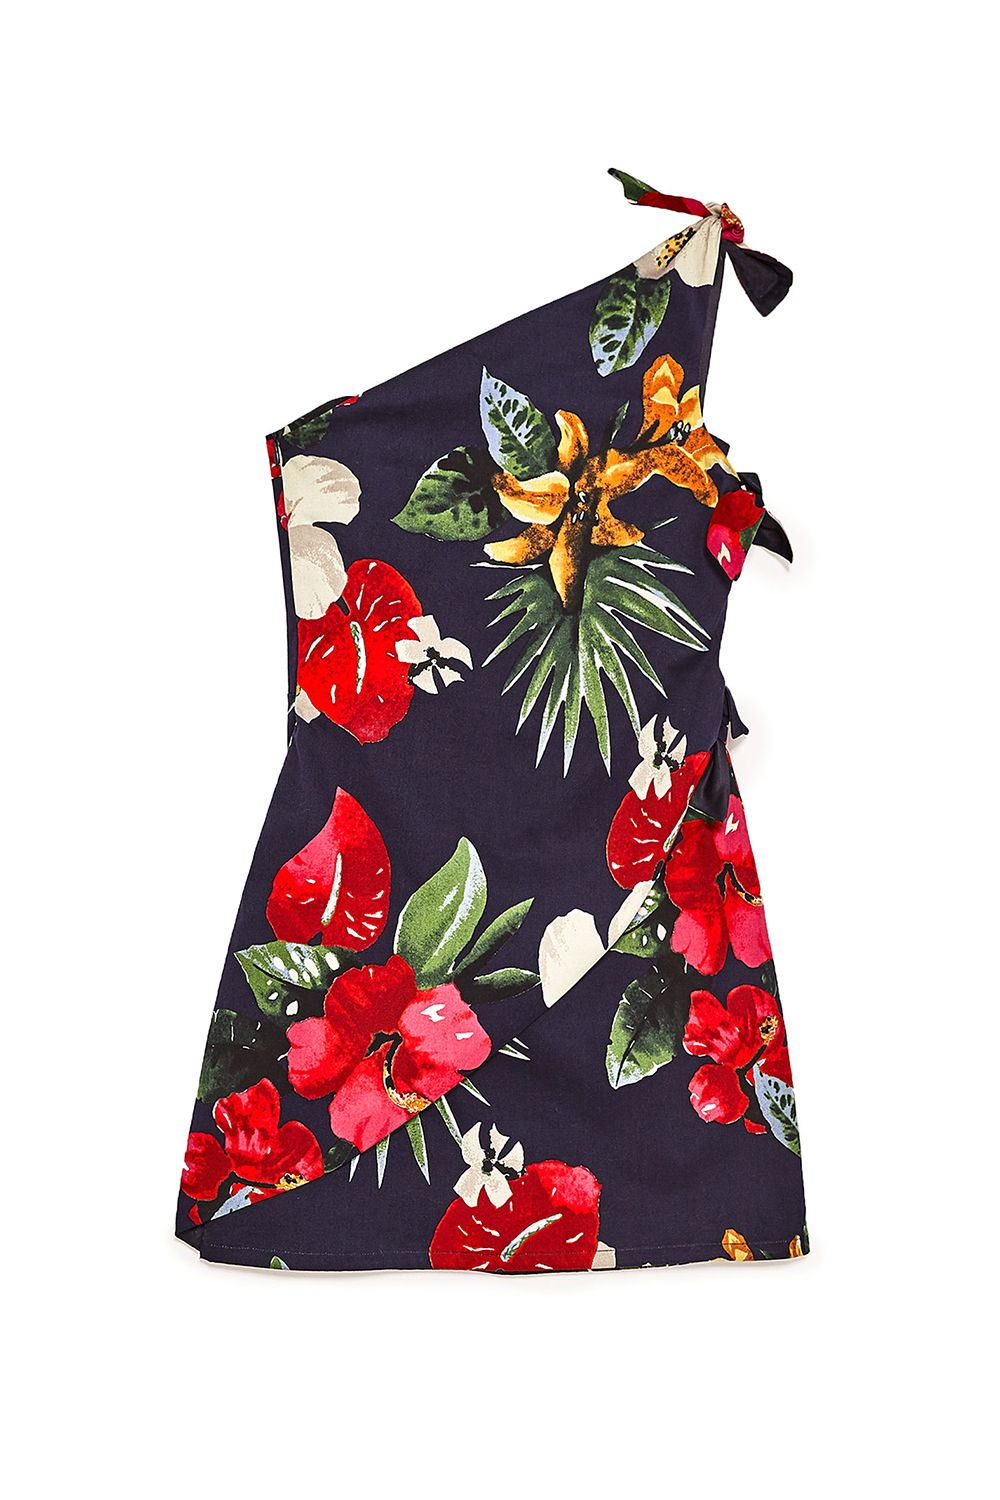 """<p>Because you haven't quite figured out how to style a tropical camp shirt, but you know you can wear the heck outta a one-shoulder mini.</p><p>$50, <a href=""""http://www.zara.com/us/en/trf/dresses/printed-dress-with-asymmetric-hem-c358031p4368561.html"""" target=""""_blank"""" data-tracking-id=""""recirc-text-link"""">zara.com</a>.</p>"""